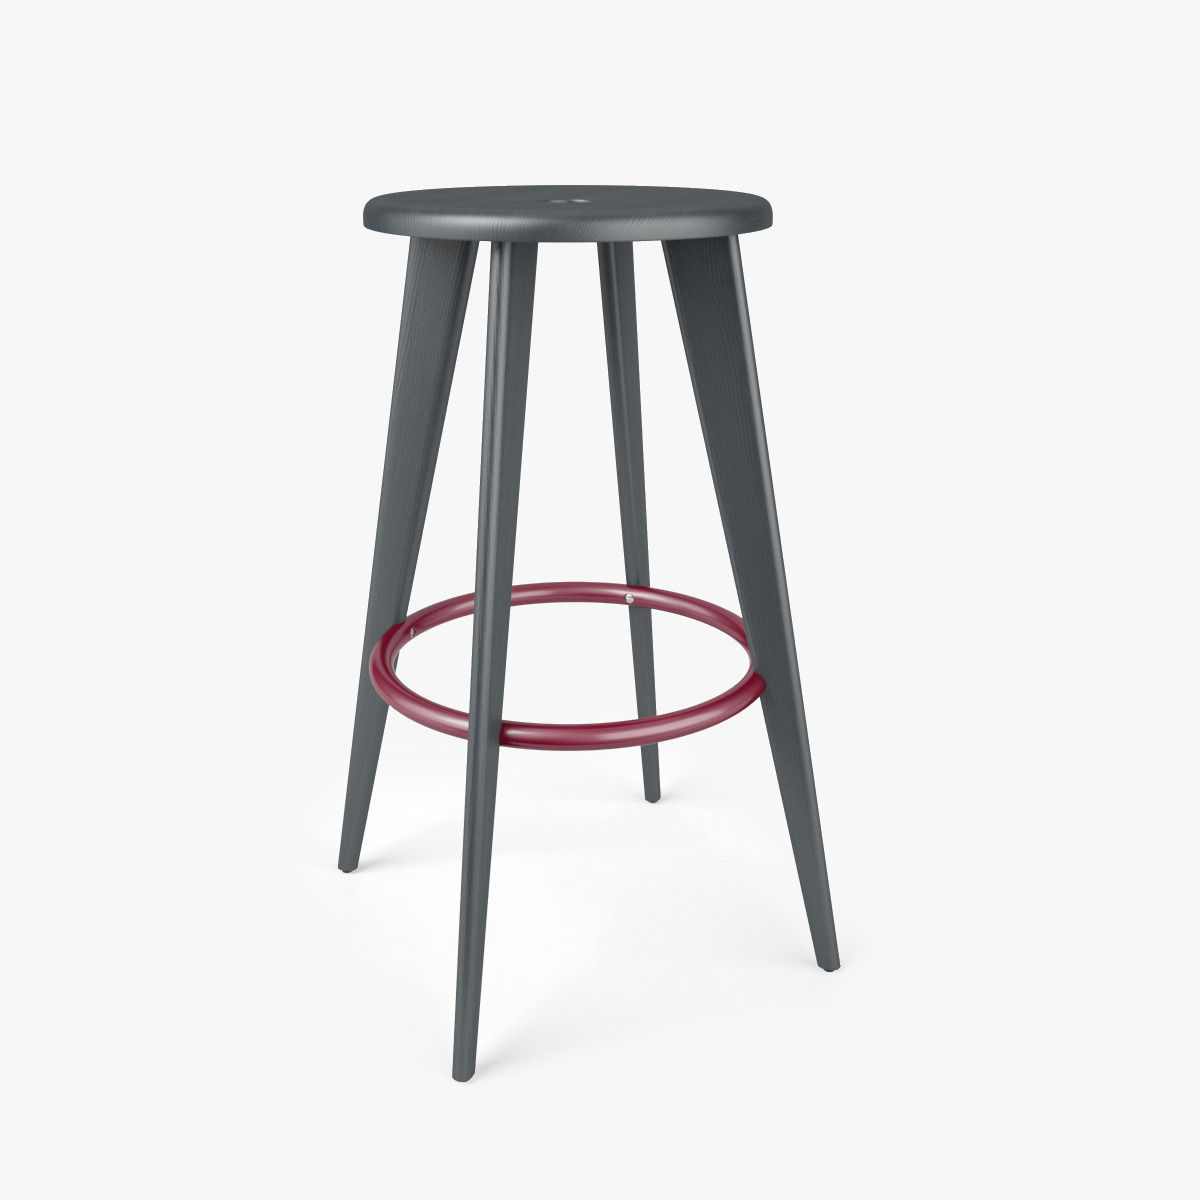 vitra tabouret haut bar stool 3d model max obj fbx mtl. Black Bedroom Furniture Sets. Home Design Ideas